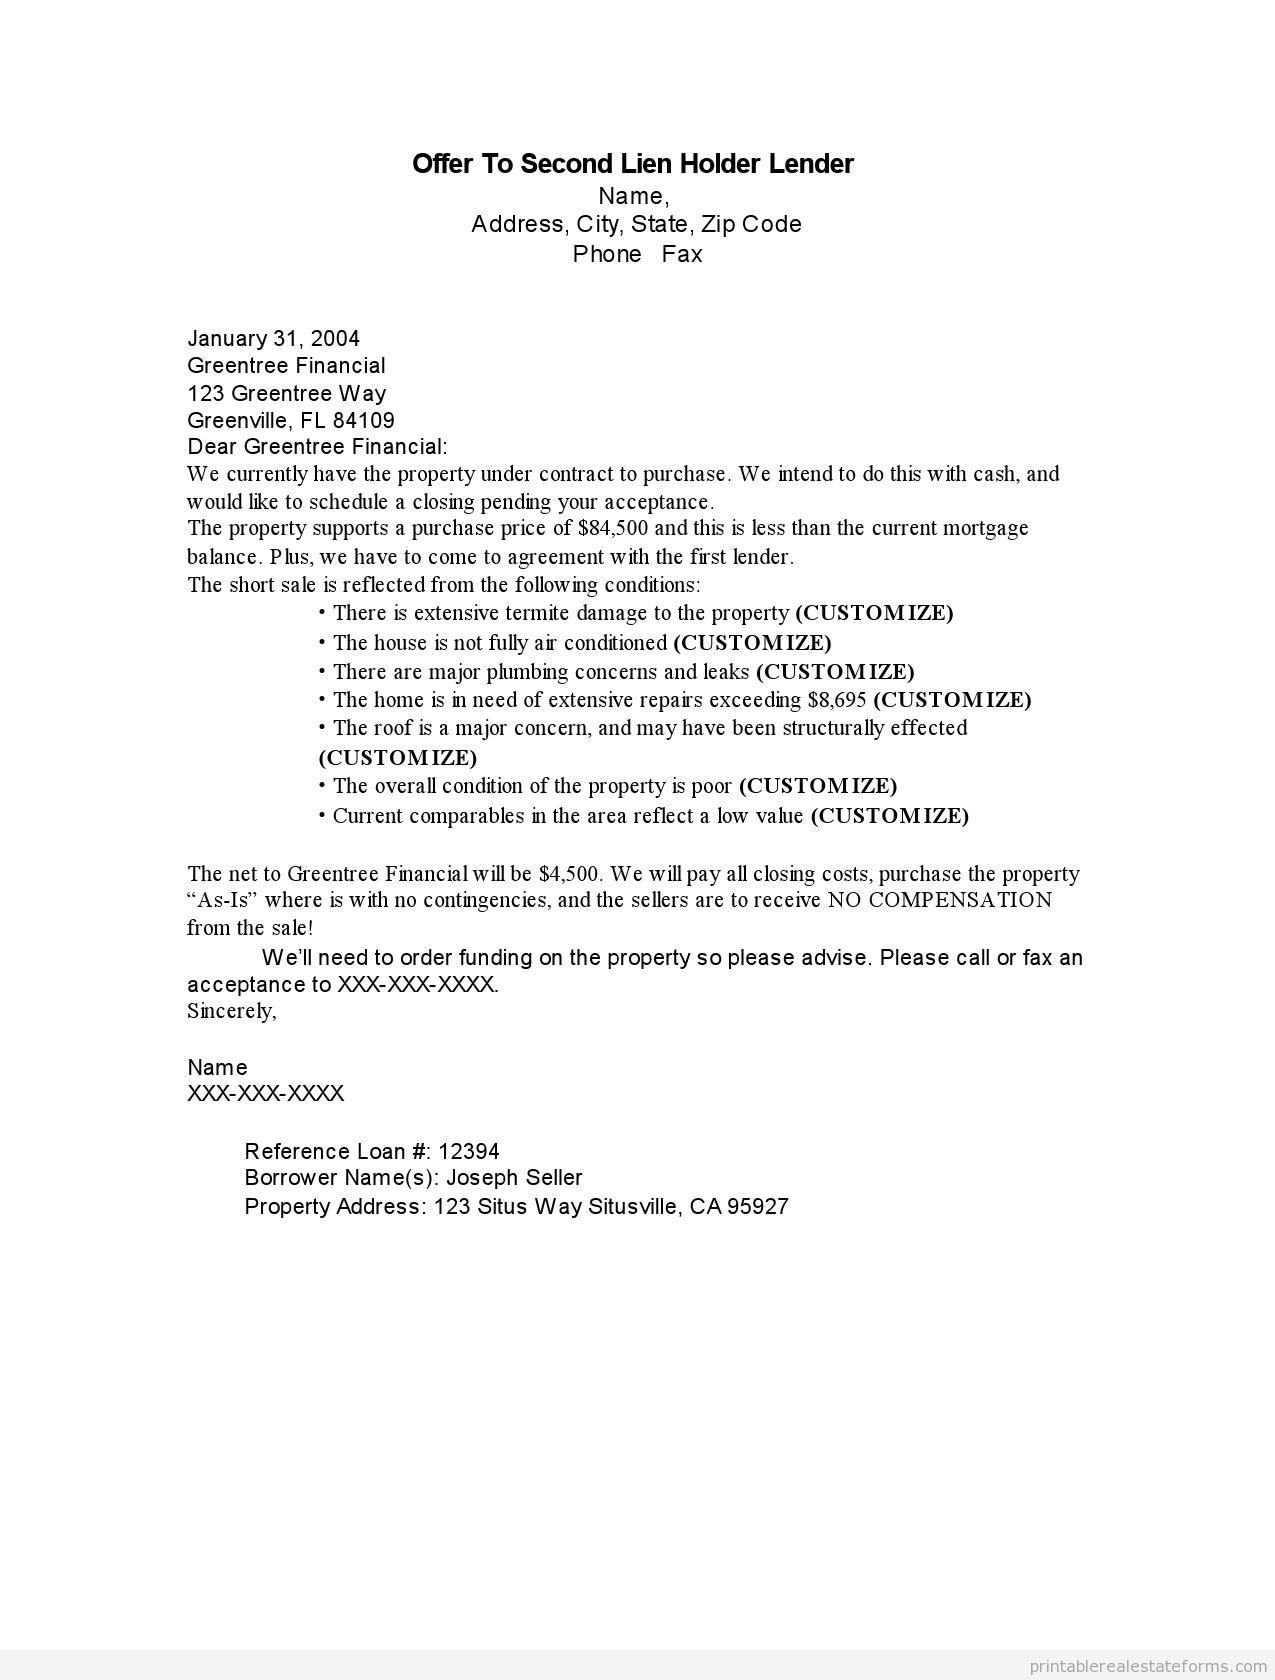 Notice Of Lien Letter Template - Letter Intent to Lien Sample Printable Fer Second Holder Lender